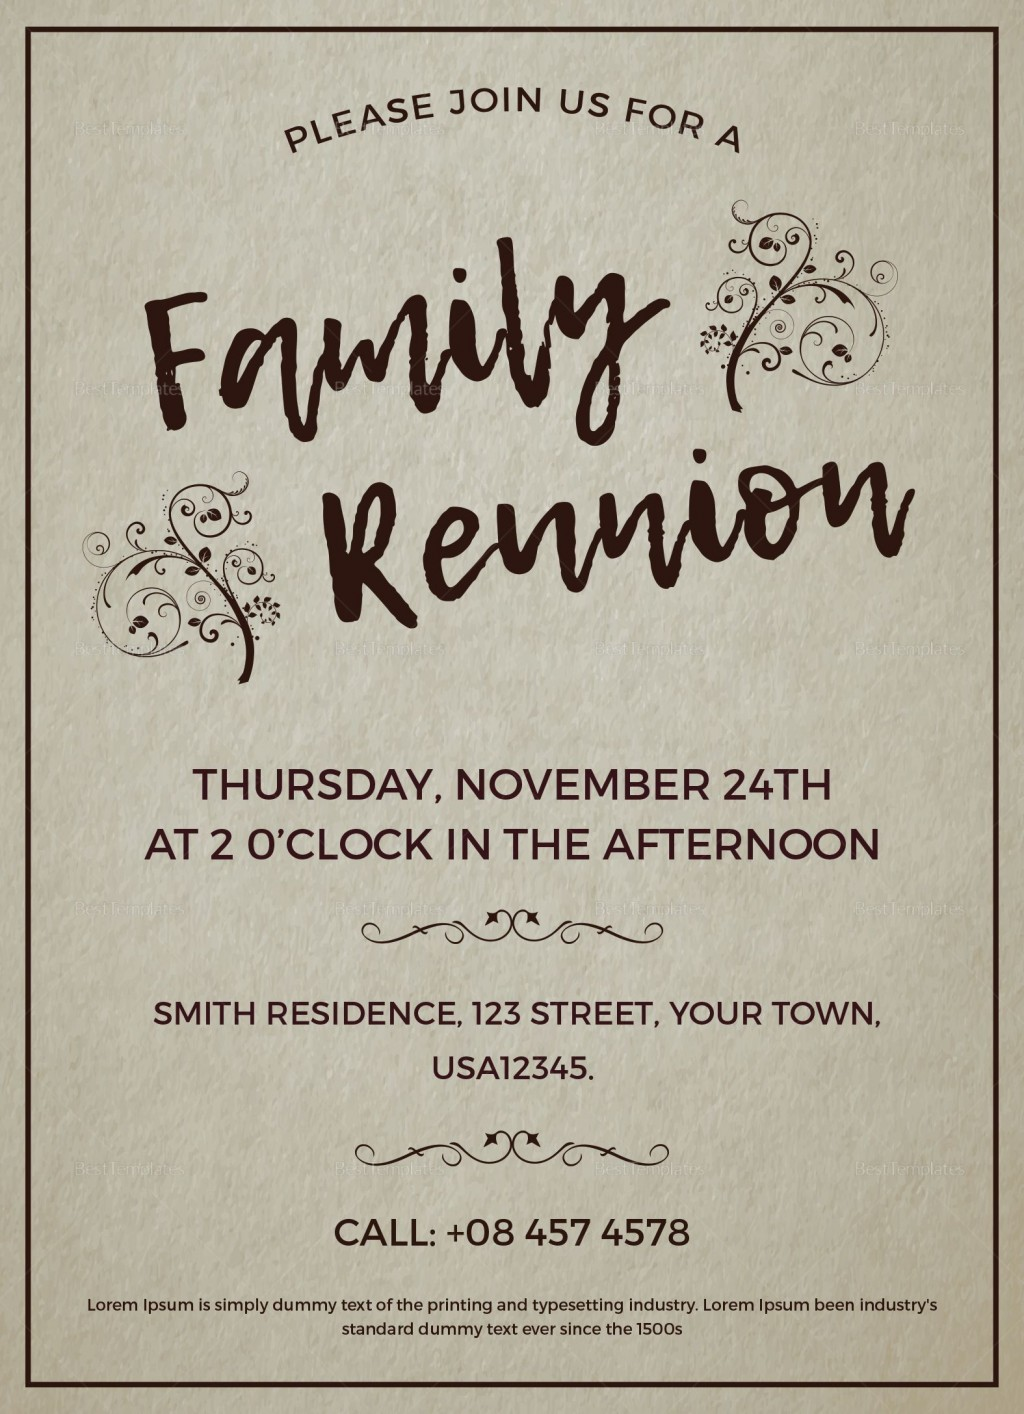 003 Surprising Family Reunion Invitation Card Template Concept Large